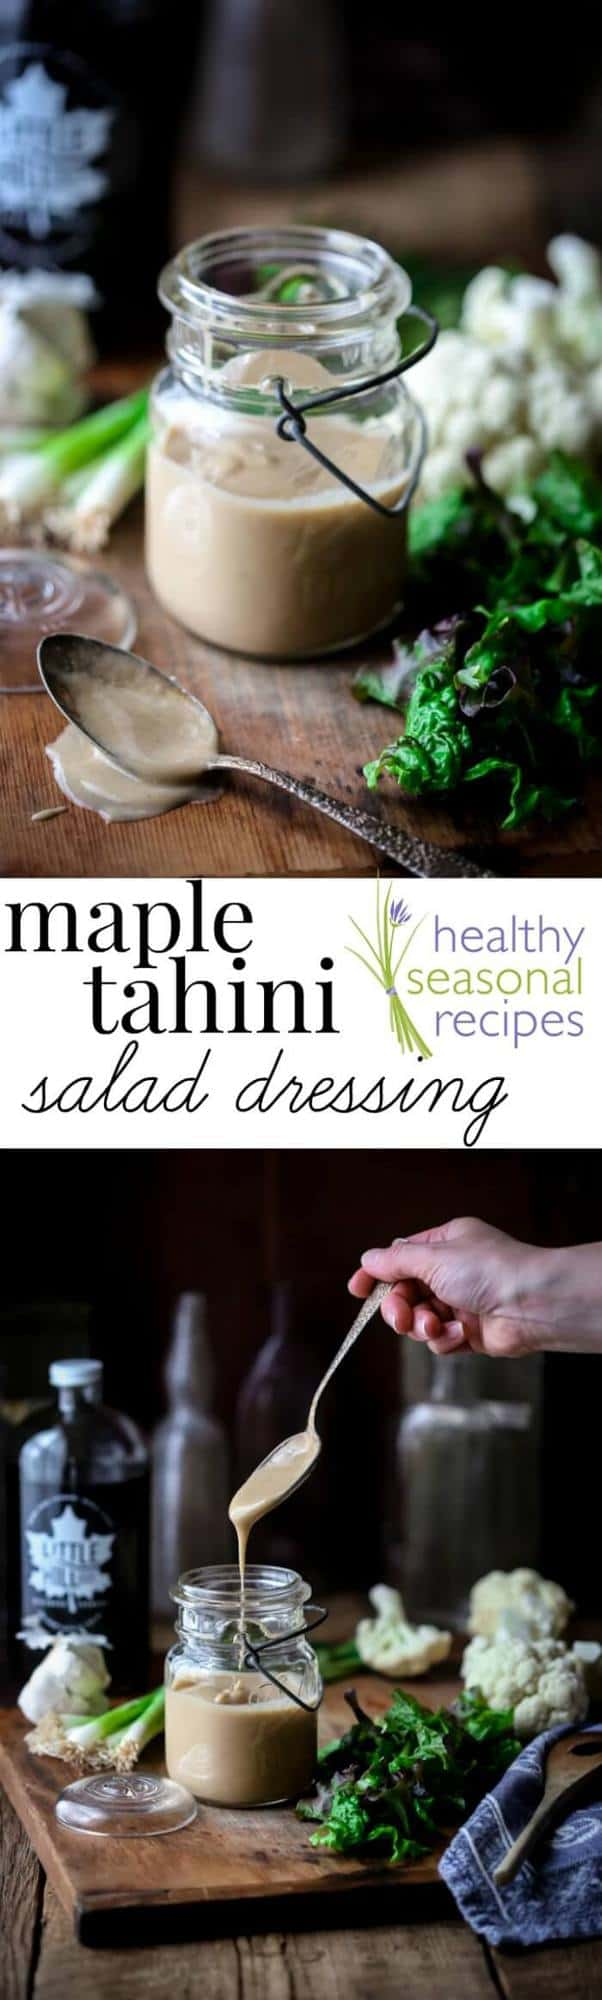 This Maple Tahini Dressing is so good and just in time for Salad Month. It is vegan, gluten-free and paleo. And is ready in just 10 minutes! Healthy Seasonal Recipes | Katie Webster #paleo #vegan #saladdressing